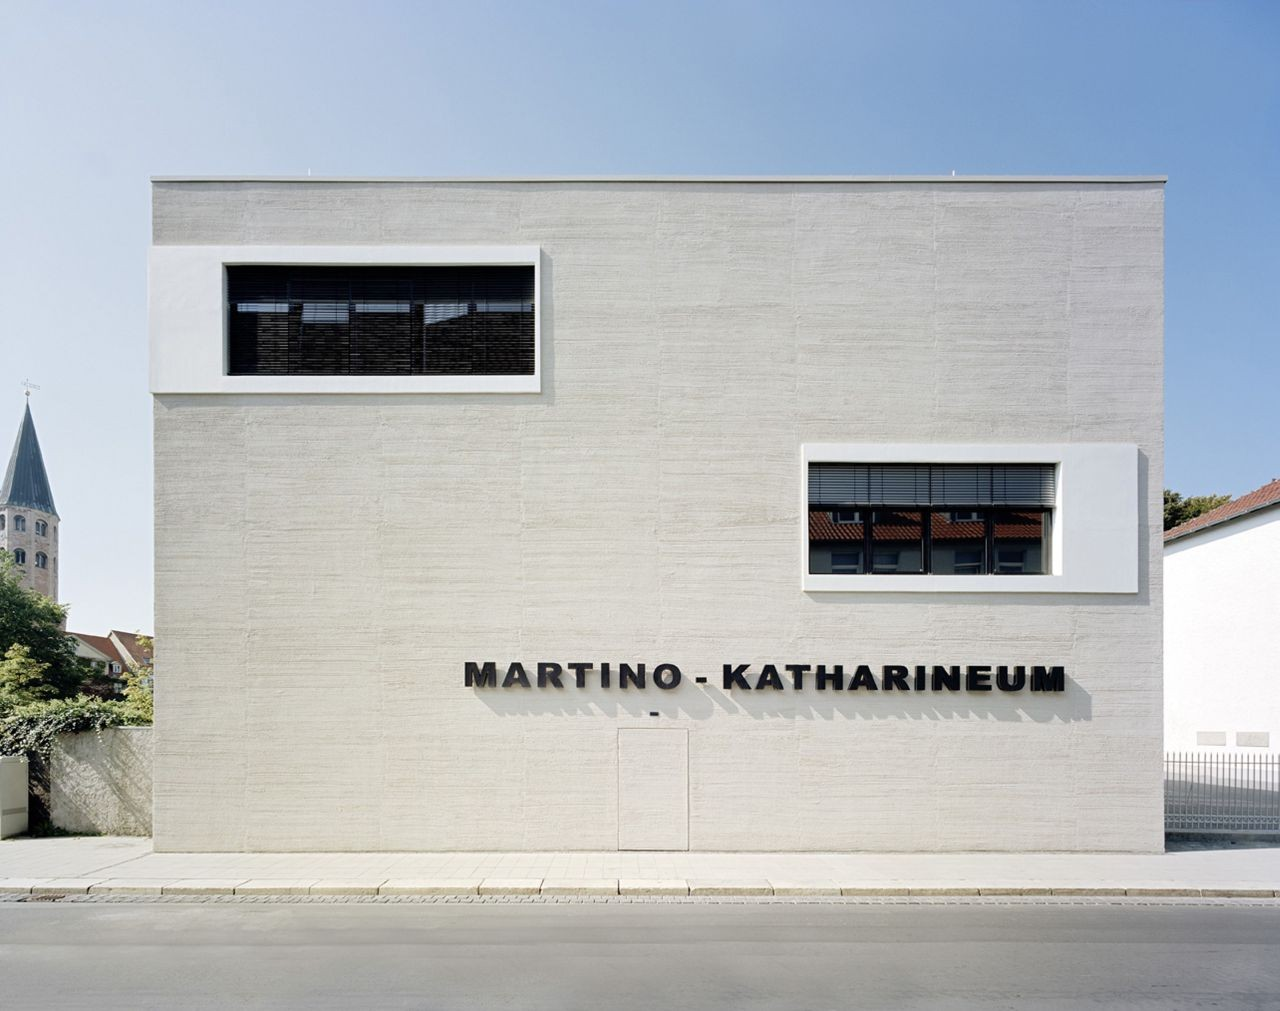 Martino-Katharineum High School / KSP Jürgen Engel Architekten, © Klemens Ortmeyer